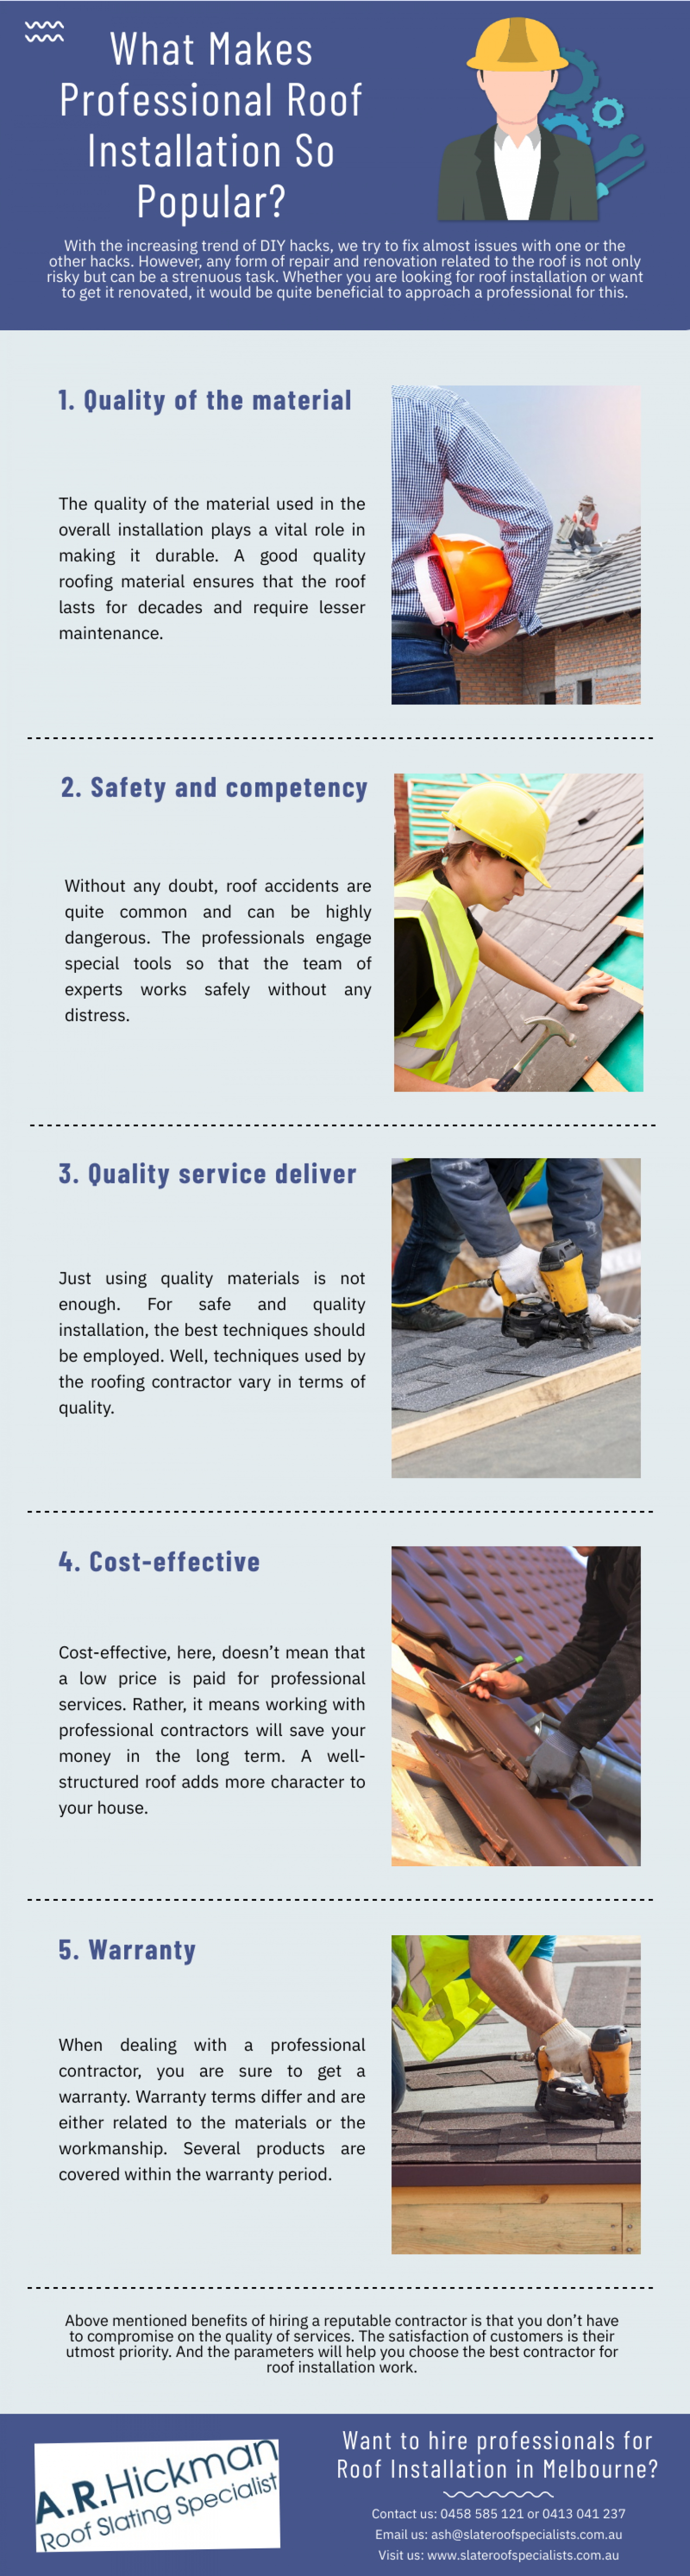 What Makes Professional Roof Installation So Popular? Infographic